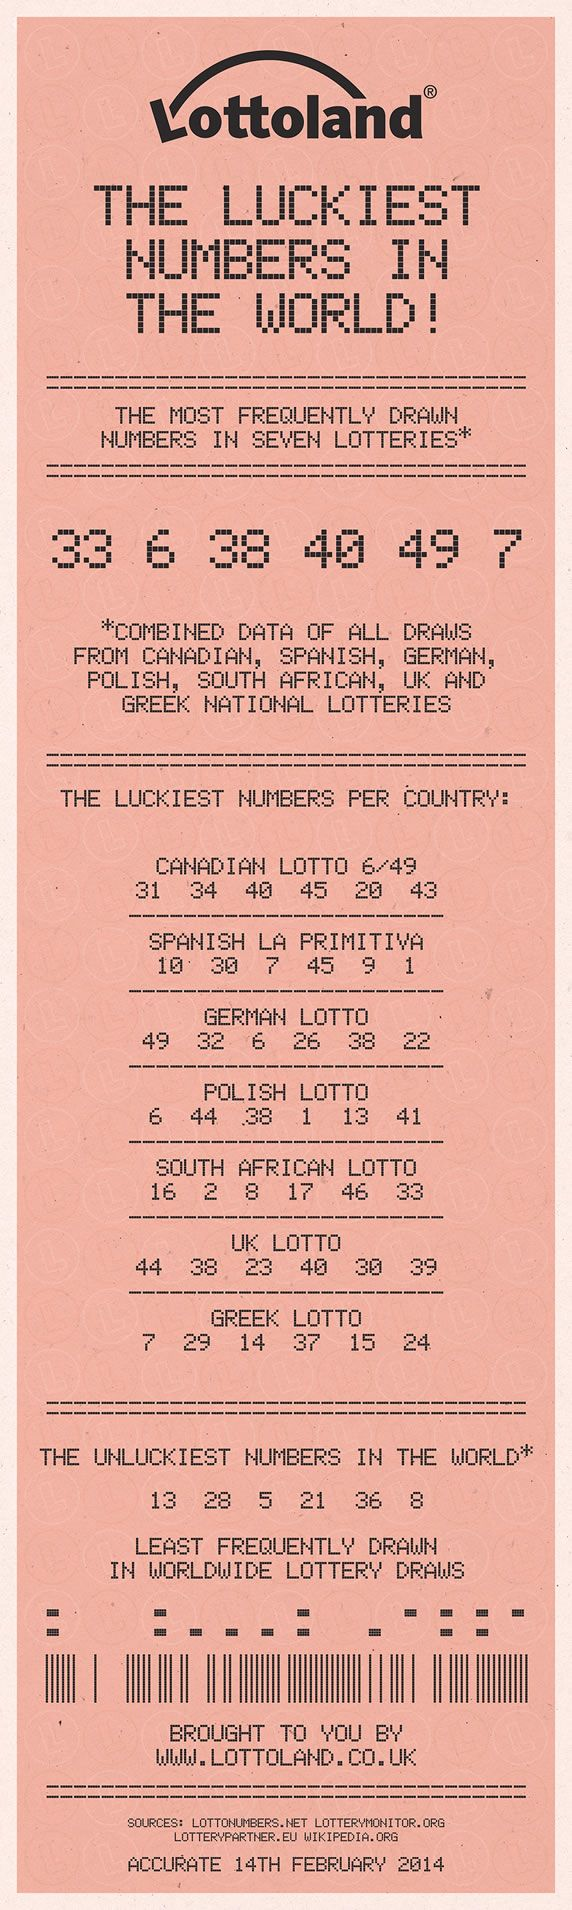 [Infographic] The Luckiest Numbers in the World                                                                                                                                                                                 More